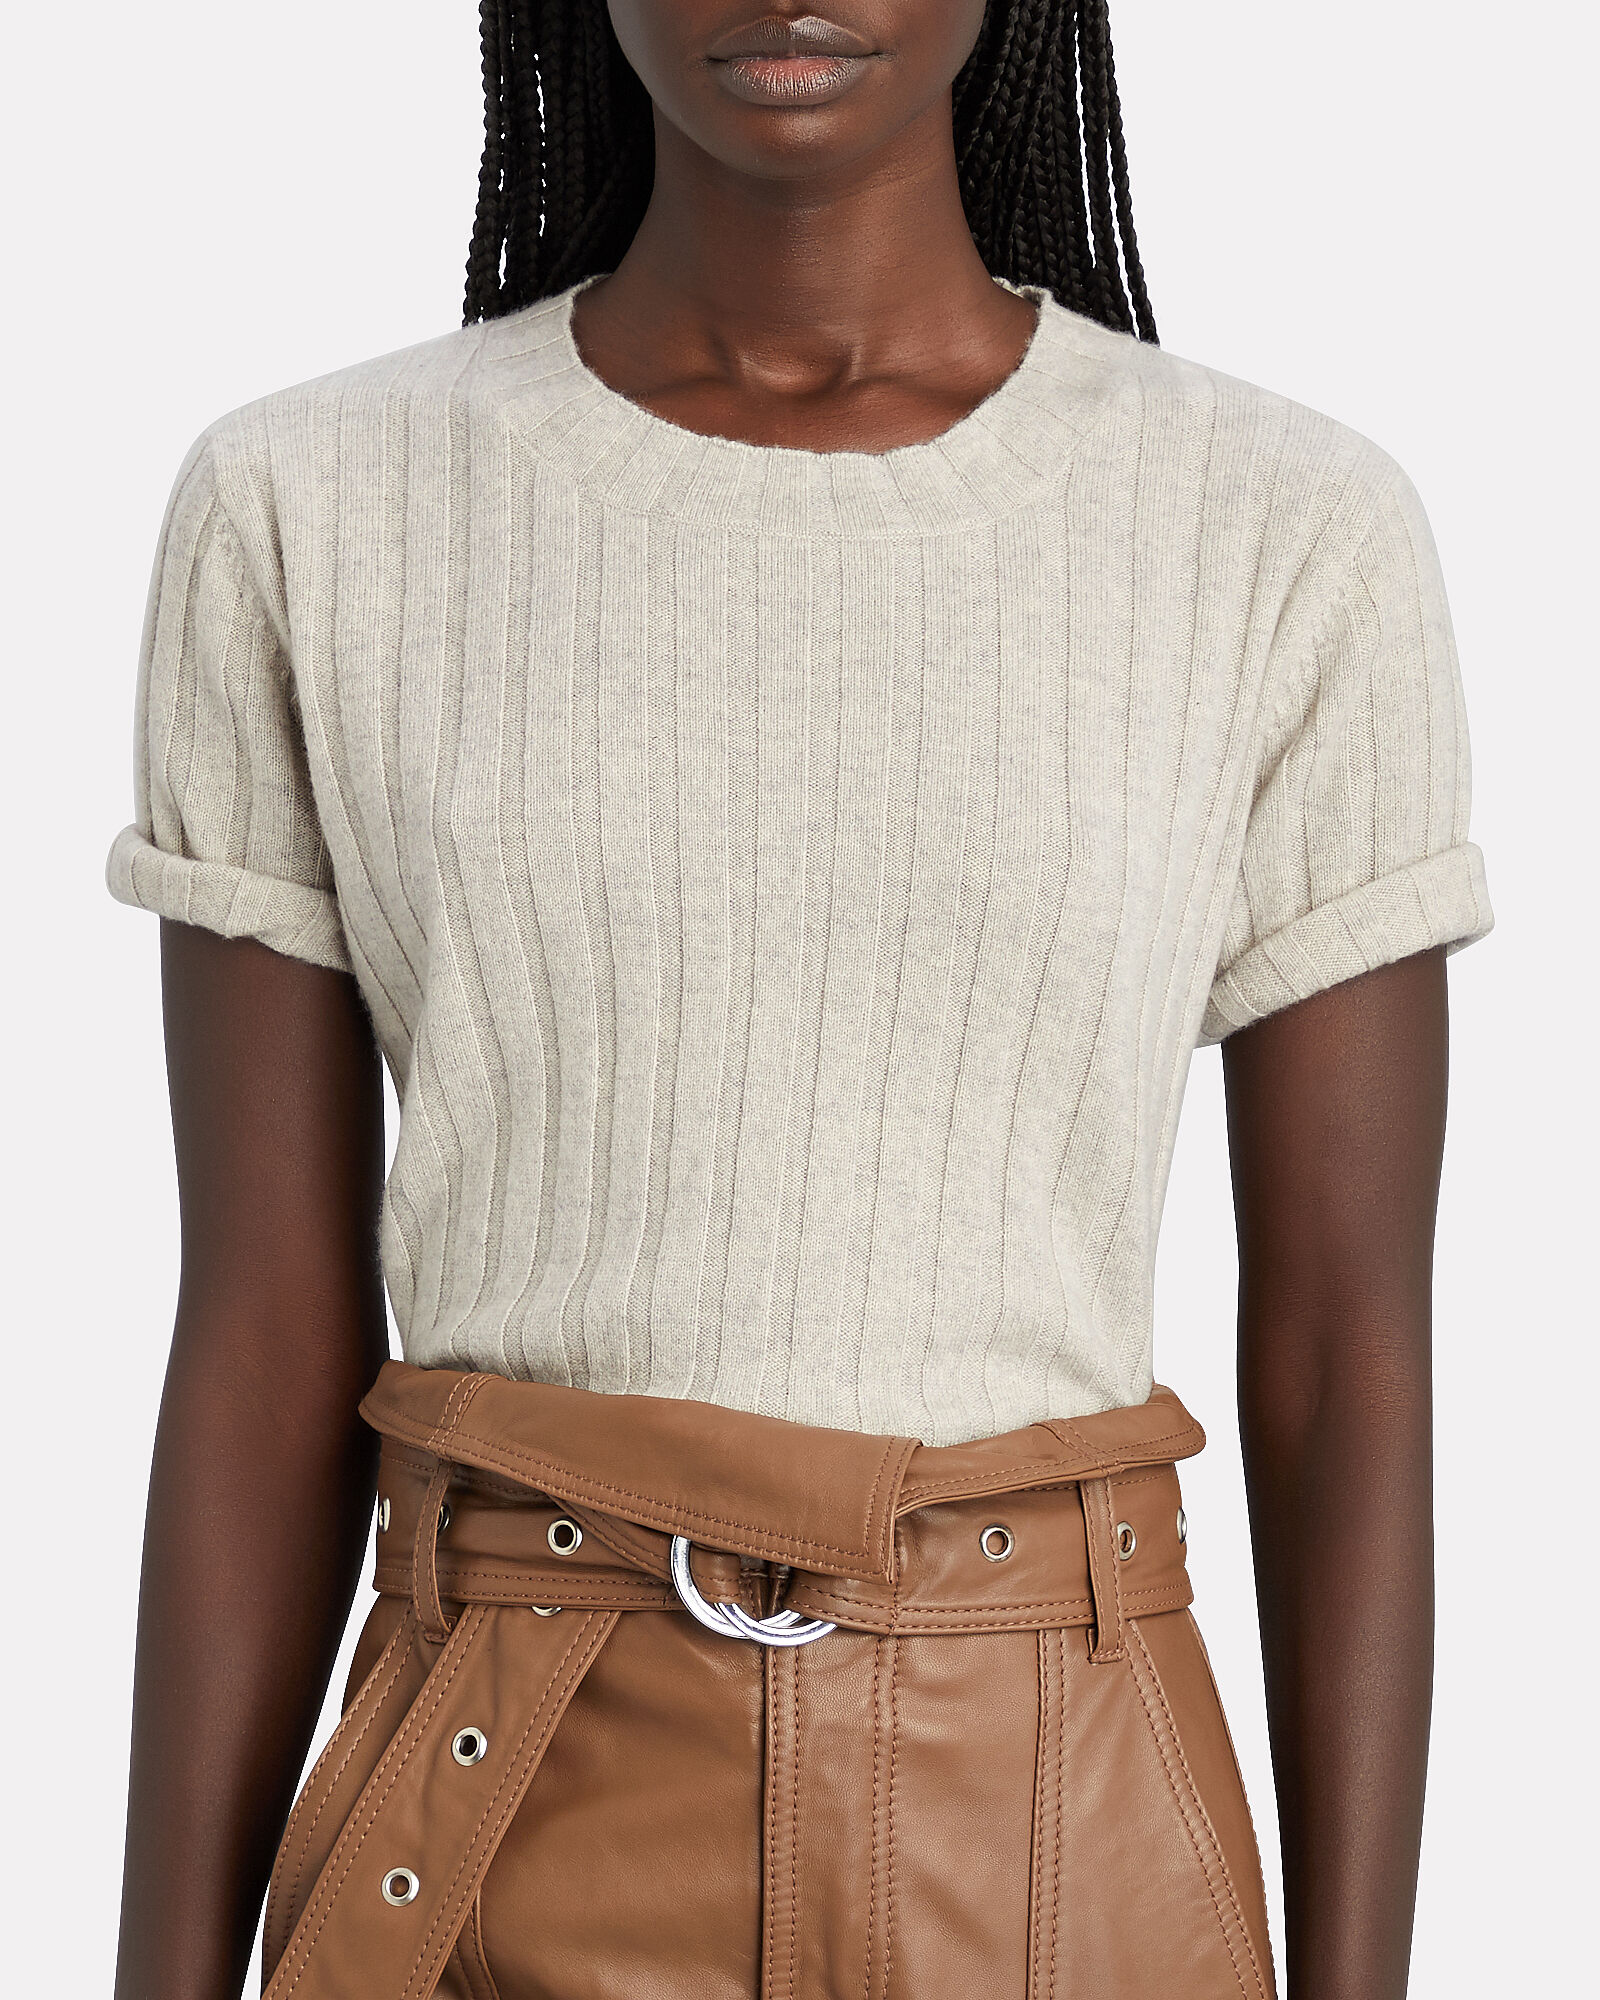 Ethan Cashmere Short Sleeve Sweater, , hi-res